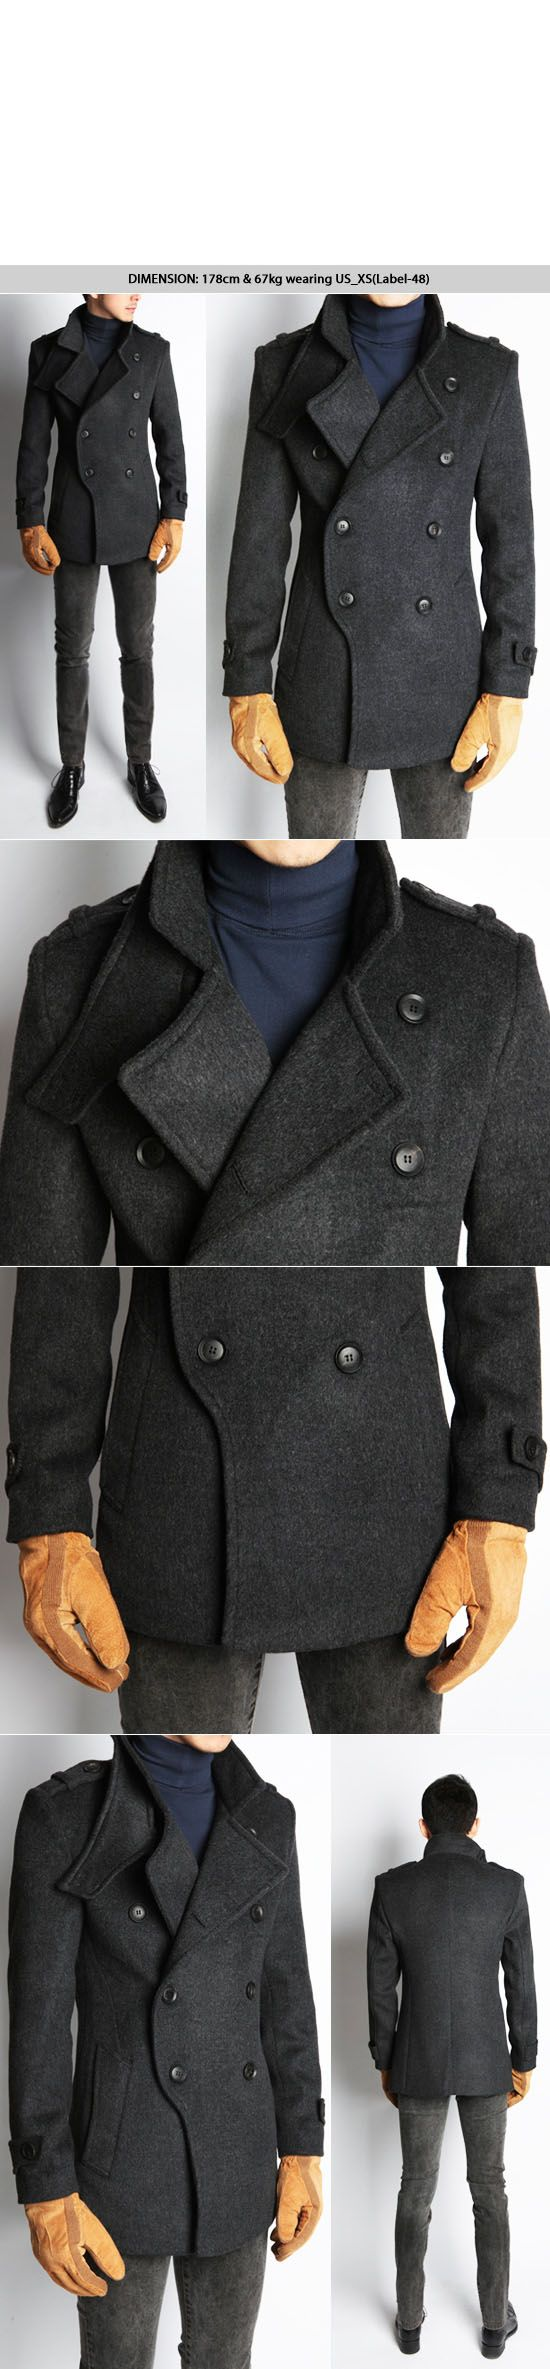 Outerwear :: Coats :: Re)Uber-sleek Highneck Cashmere Wool-Coat 27 - Mens Fashion Clothing For An Attractive Guy Look